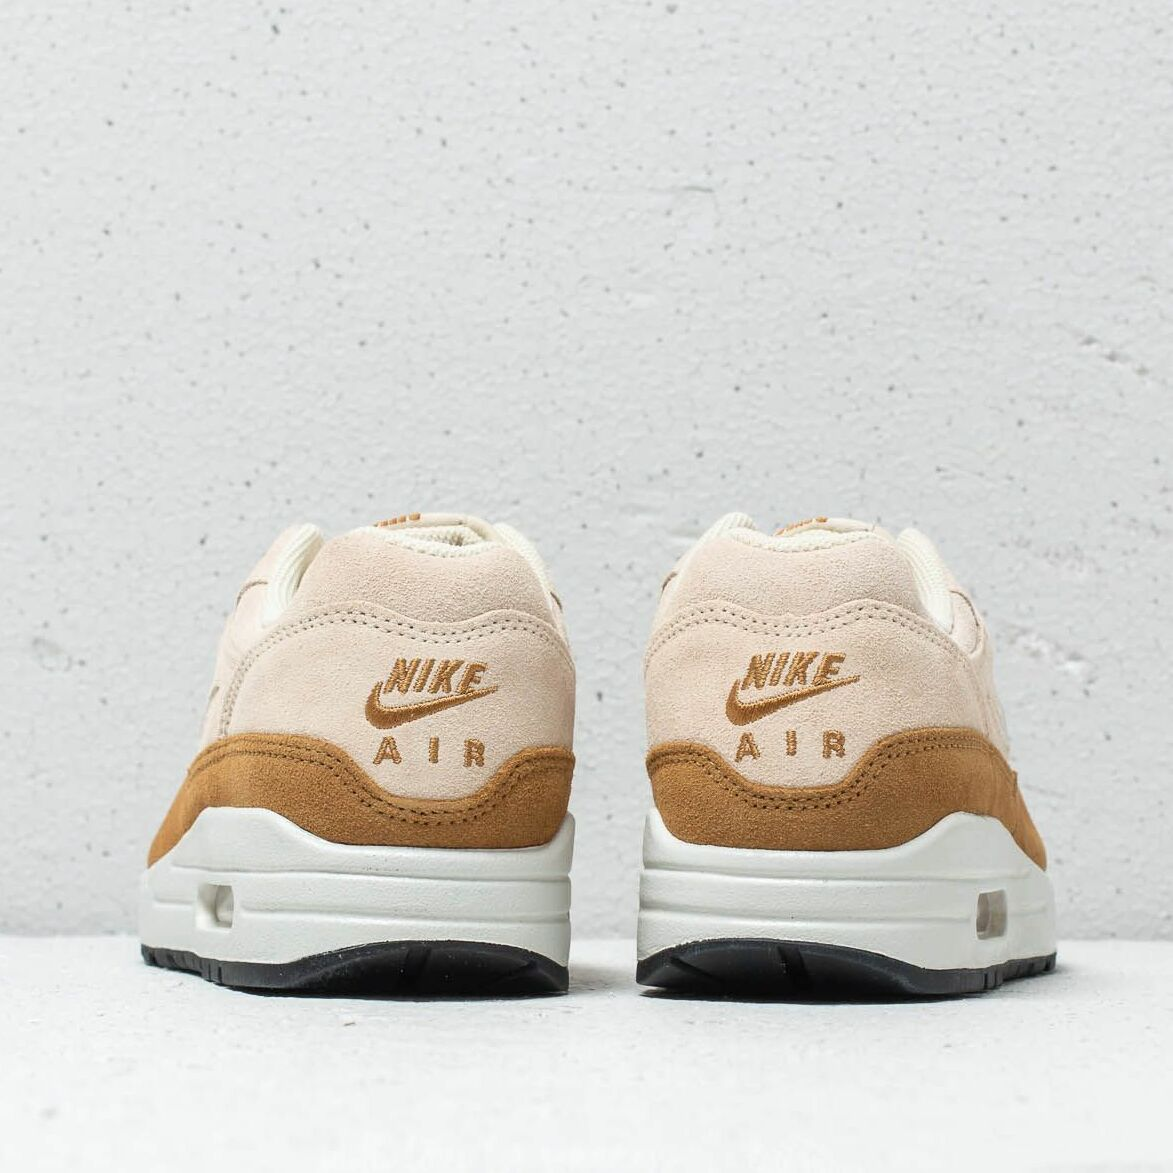 Nike Wmns Air Max 1 Premium SC Beach/ Metallic Gold Grain, Brown